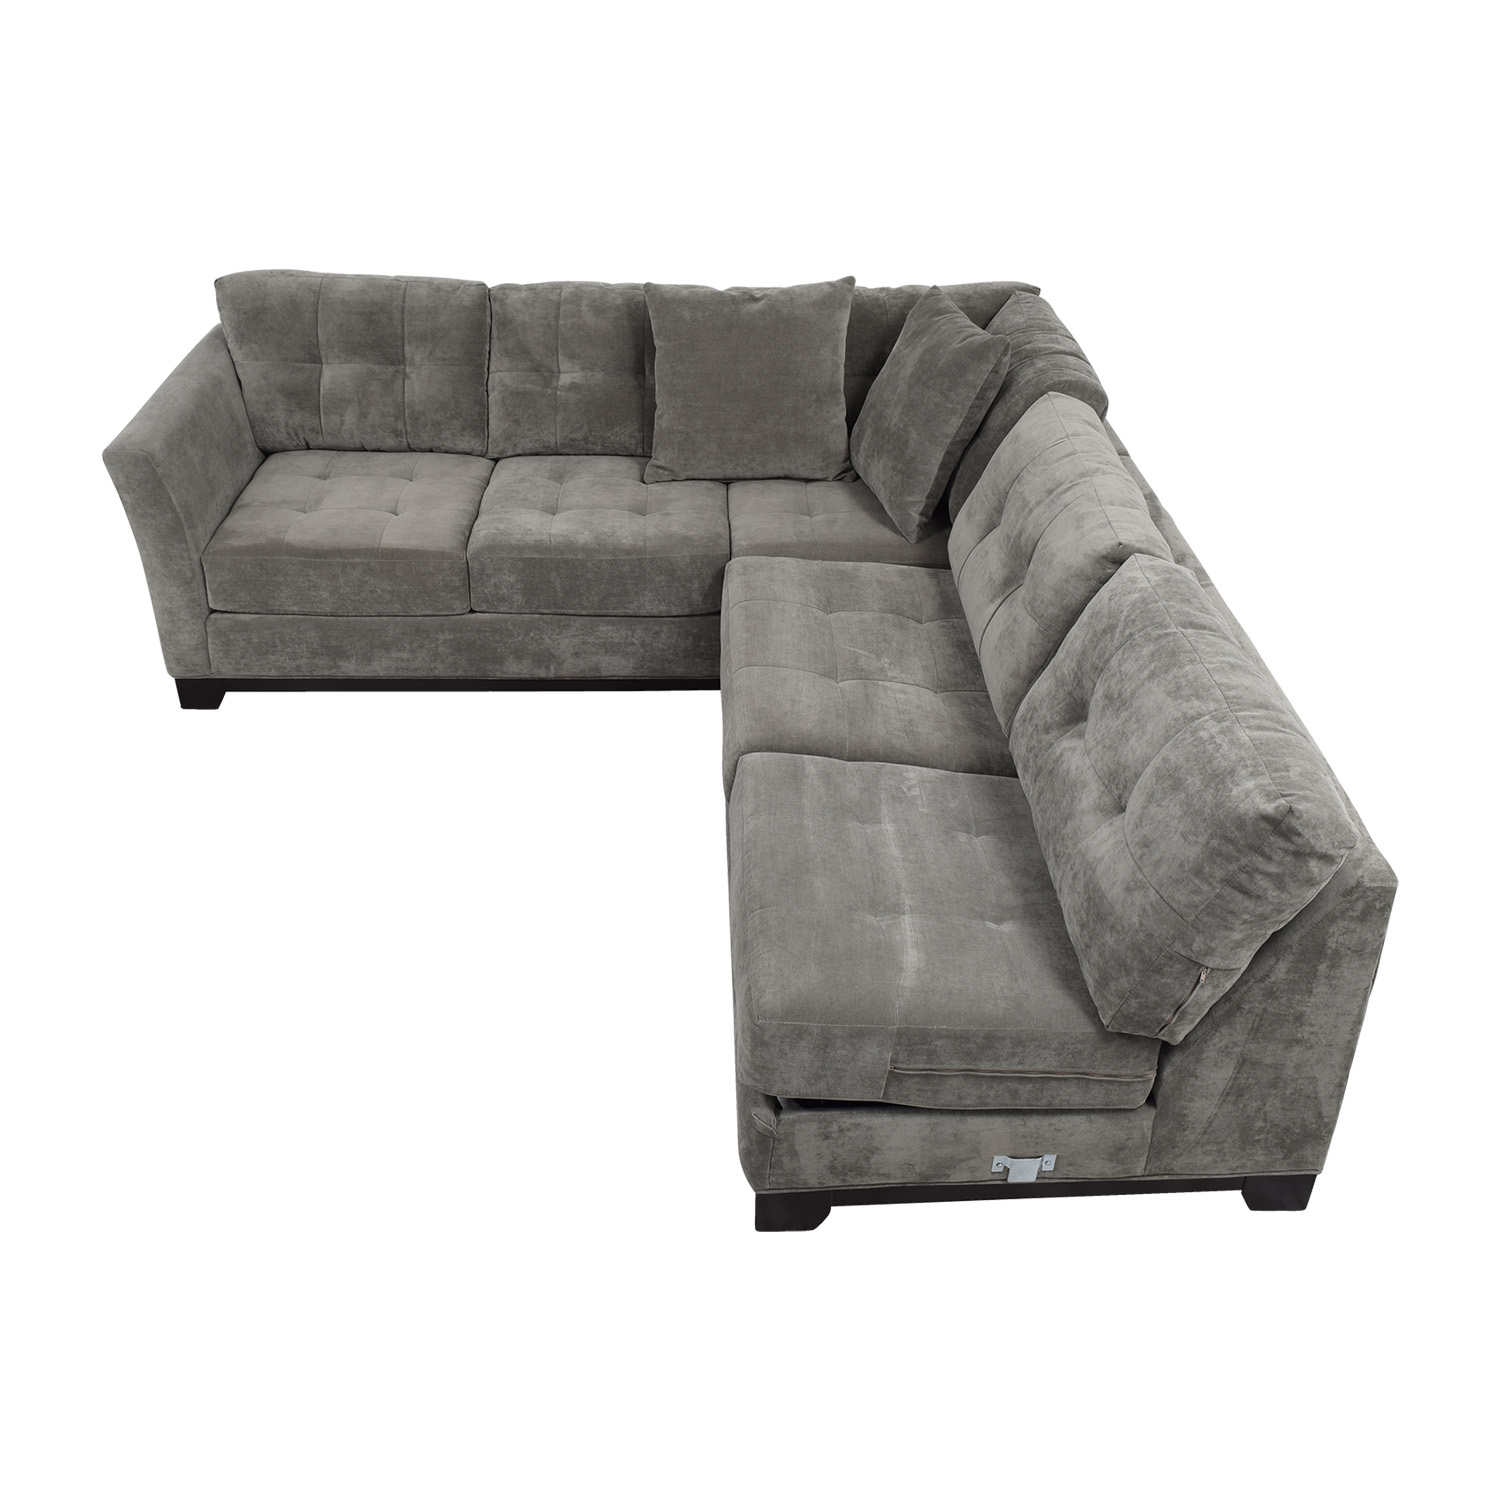 Macy's Macy's Gypsy Grey L-Shaped Sleeper Sectional dimensions